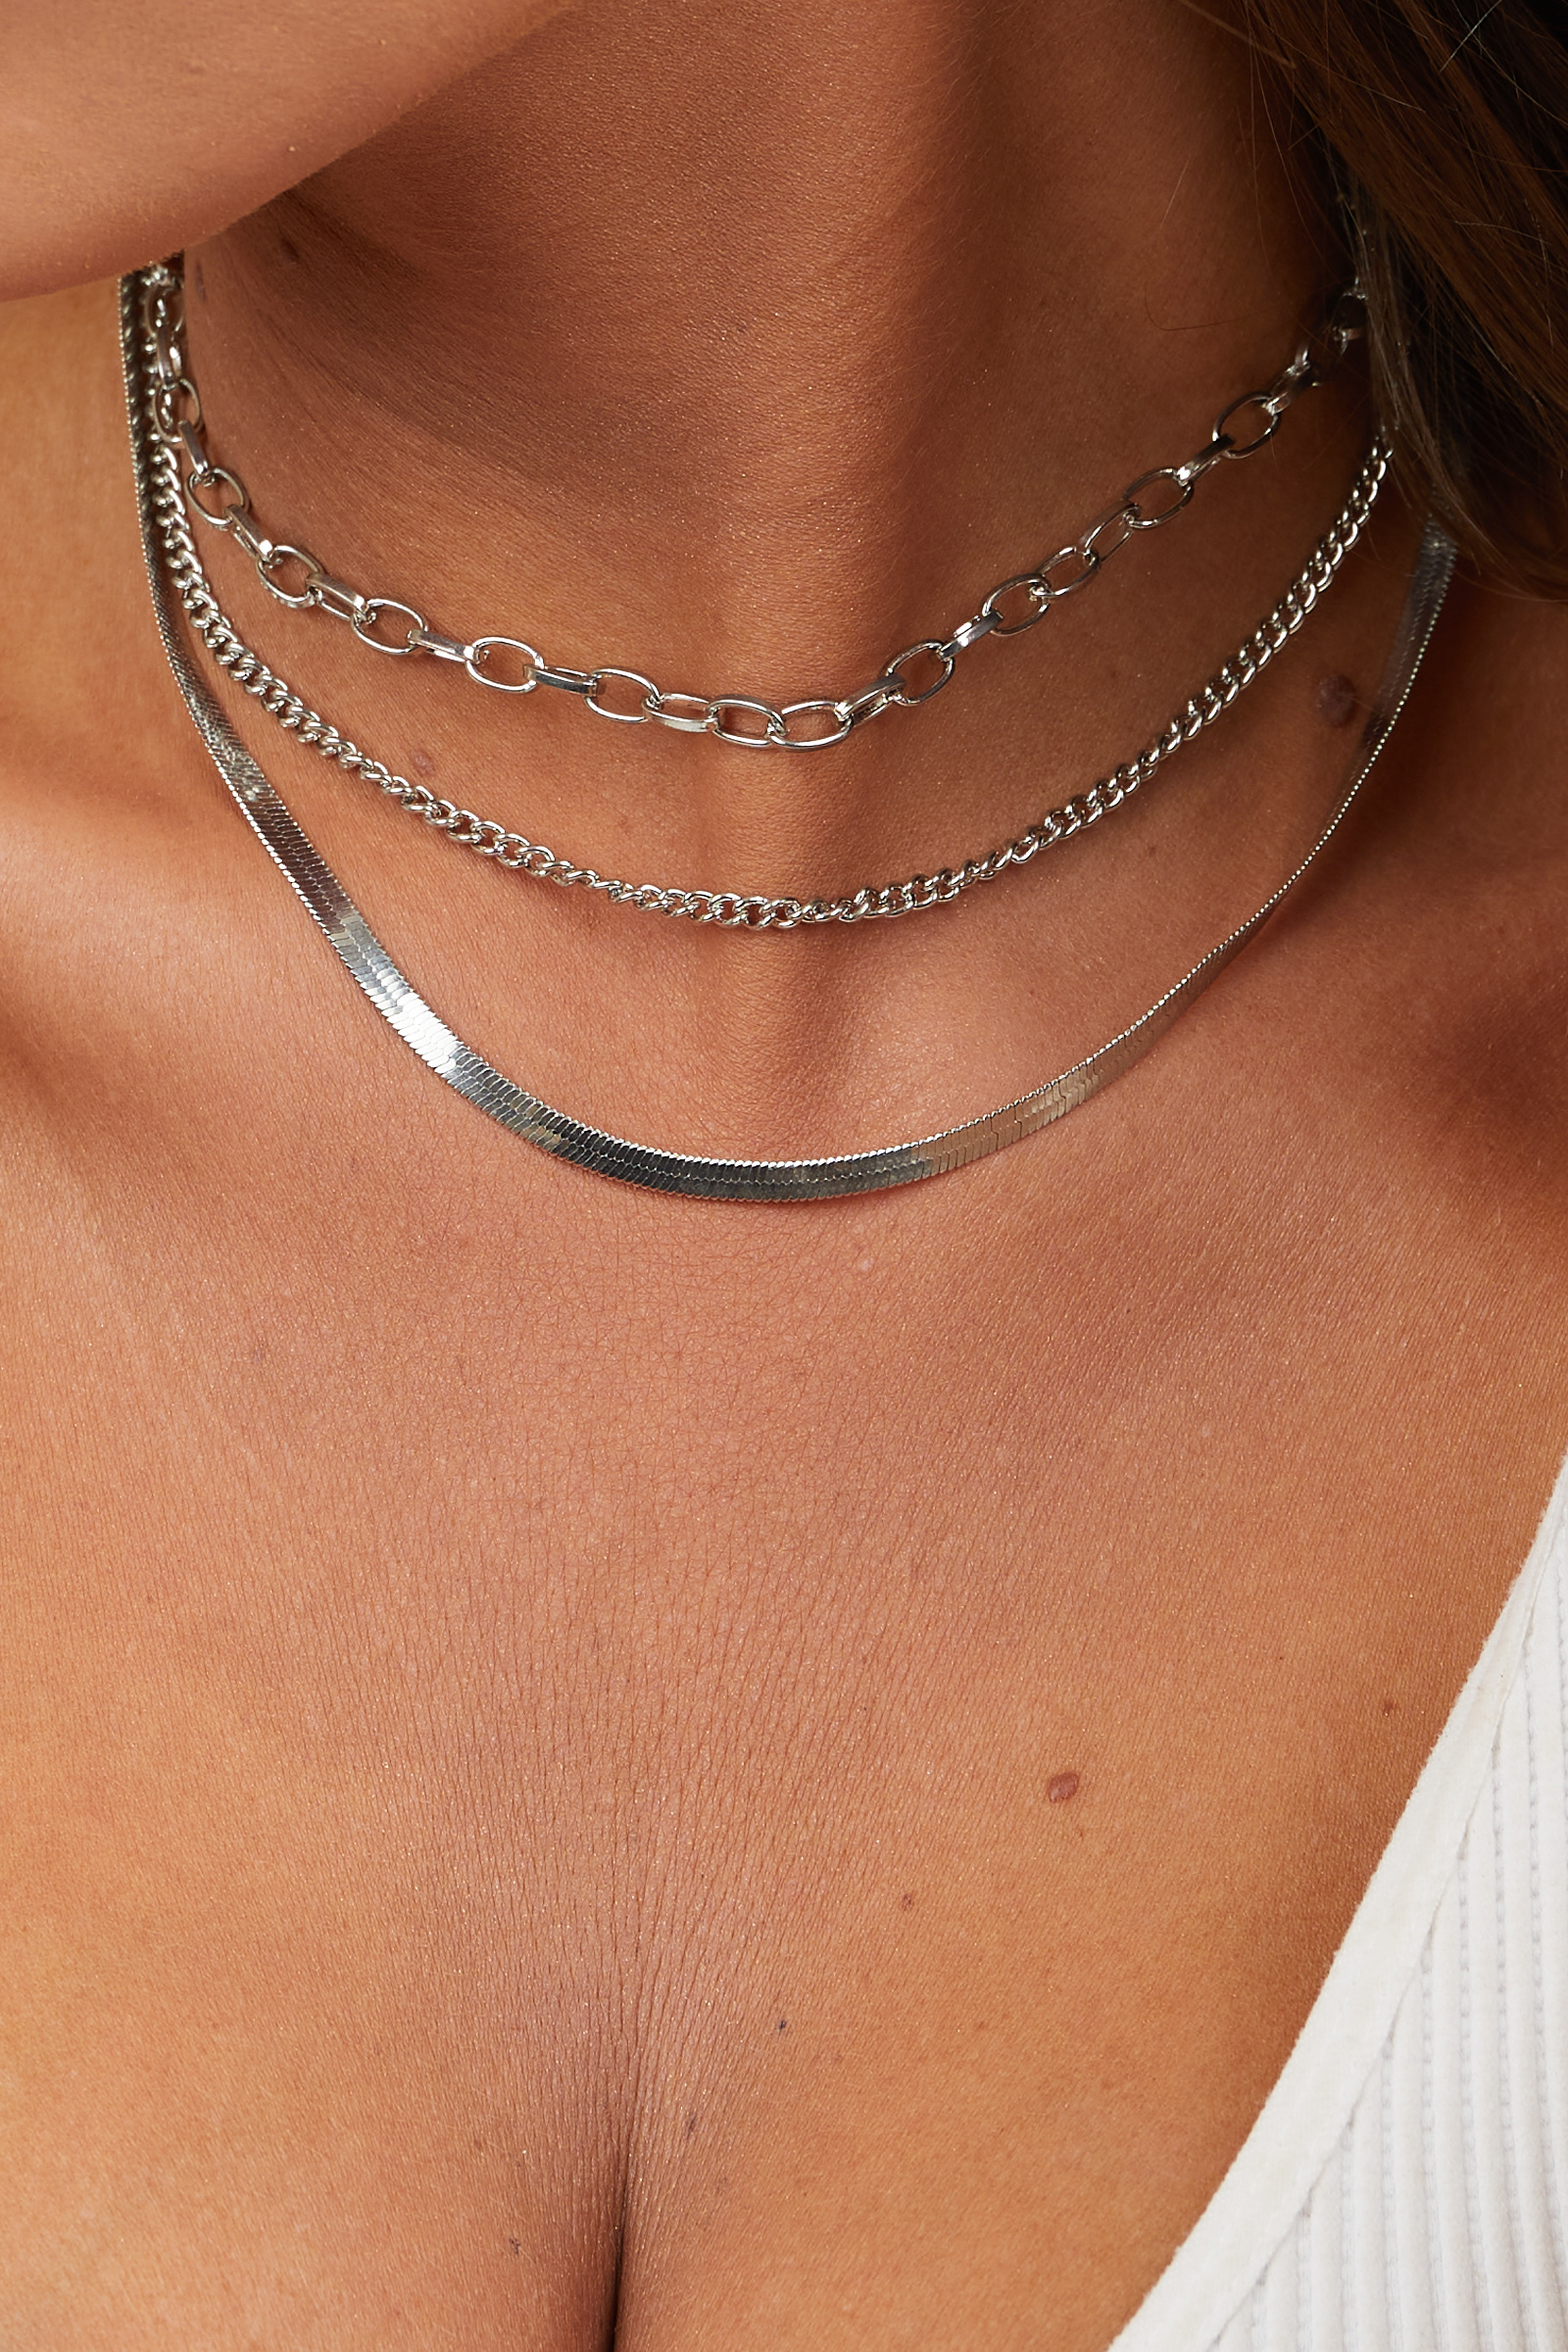 Silver Layered Chain Necklace with Lobster Clasp Closure